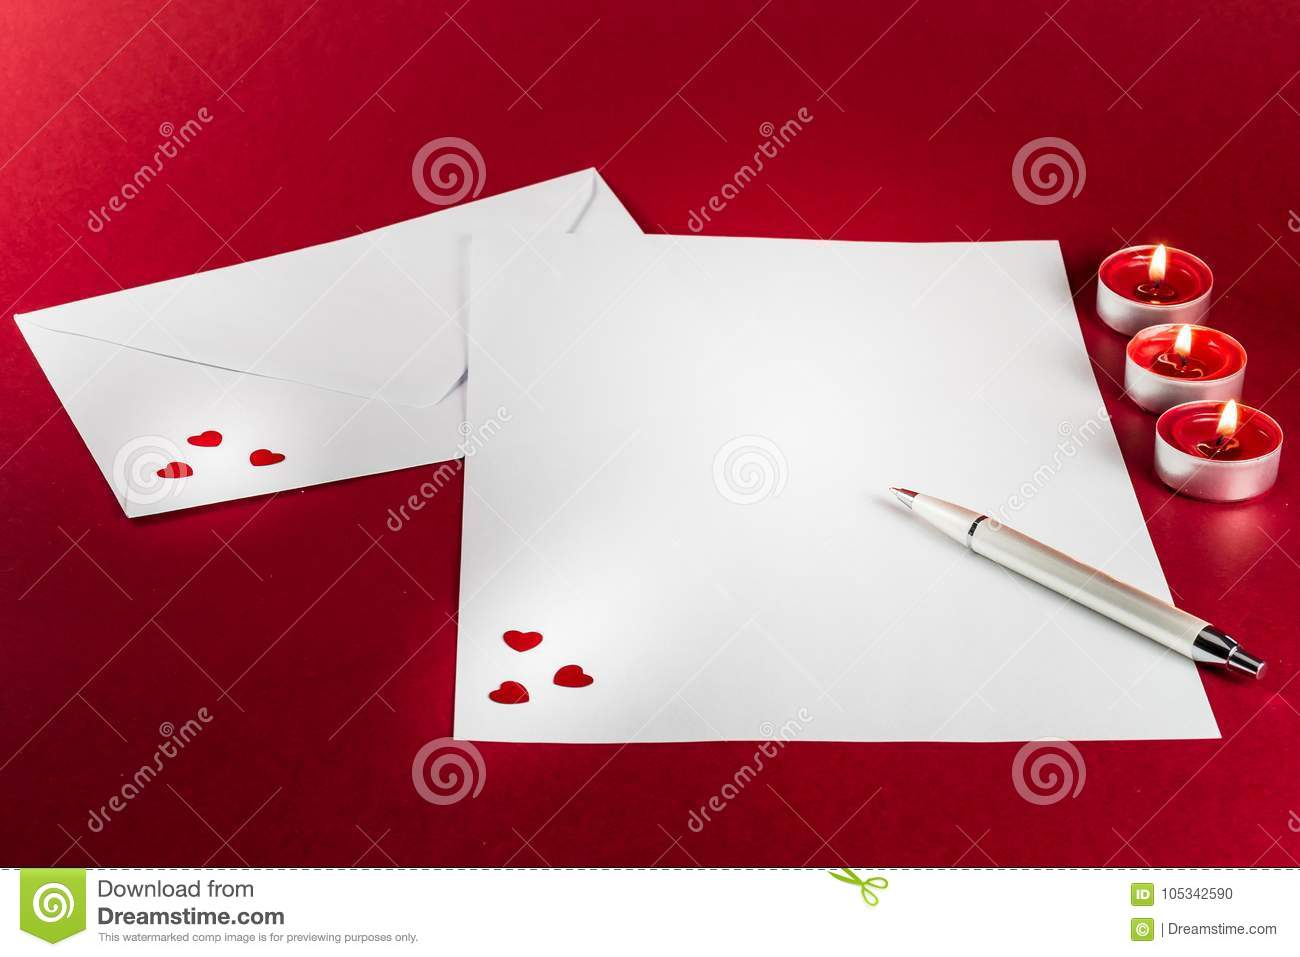 Valentines love letter writing setup with envelope paper red download comp spiritdancerdesigns Choice Image